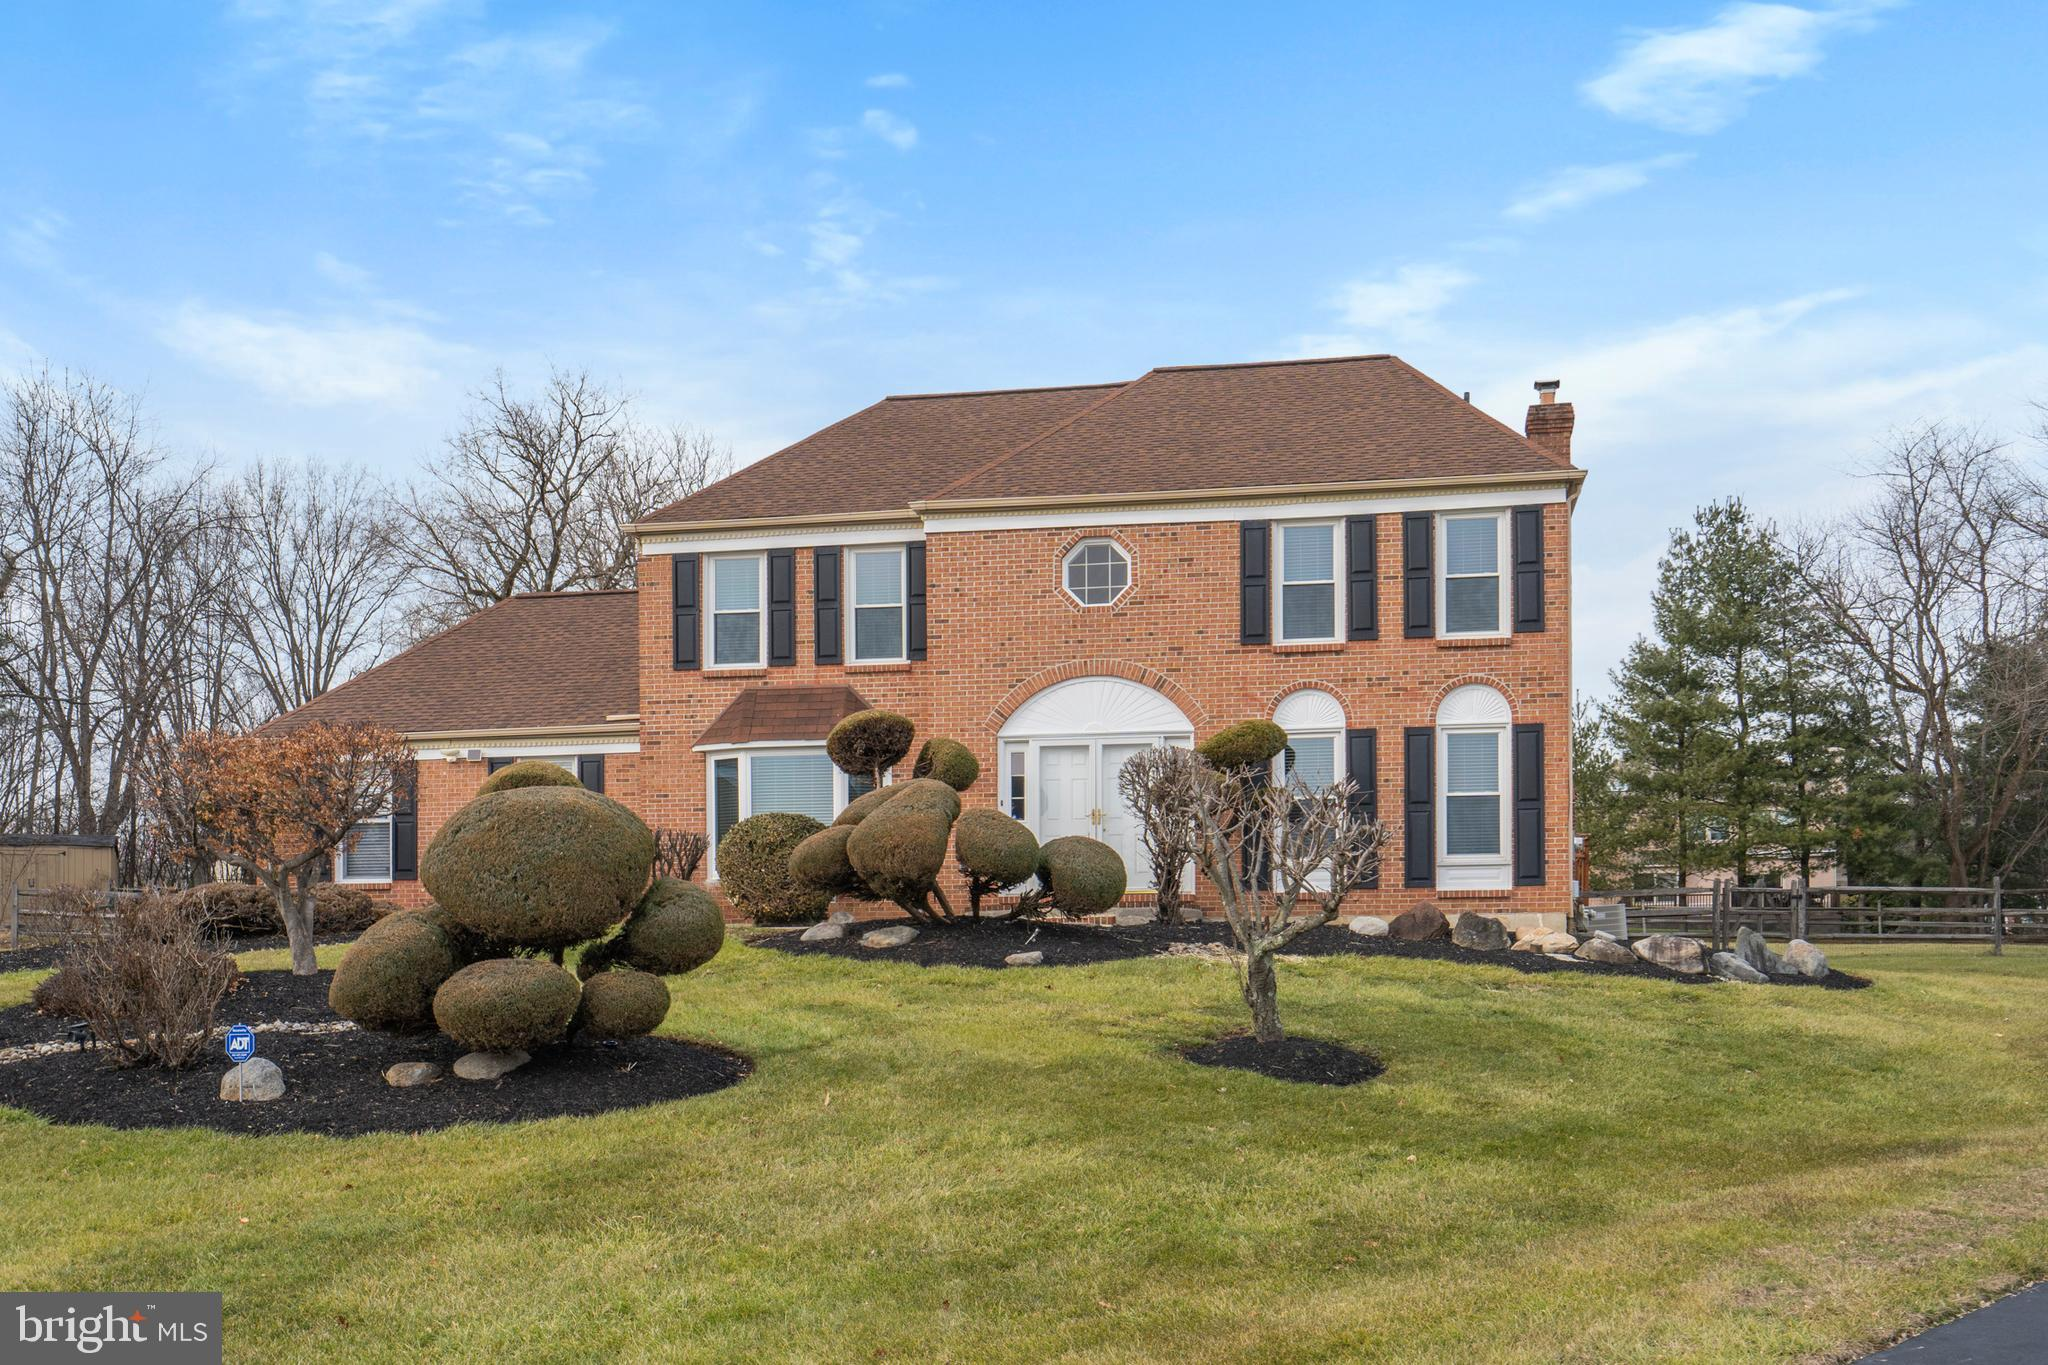 1629 CONQUEST WAY, FORT WASHINGTON, PA 19034